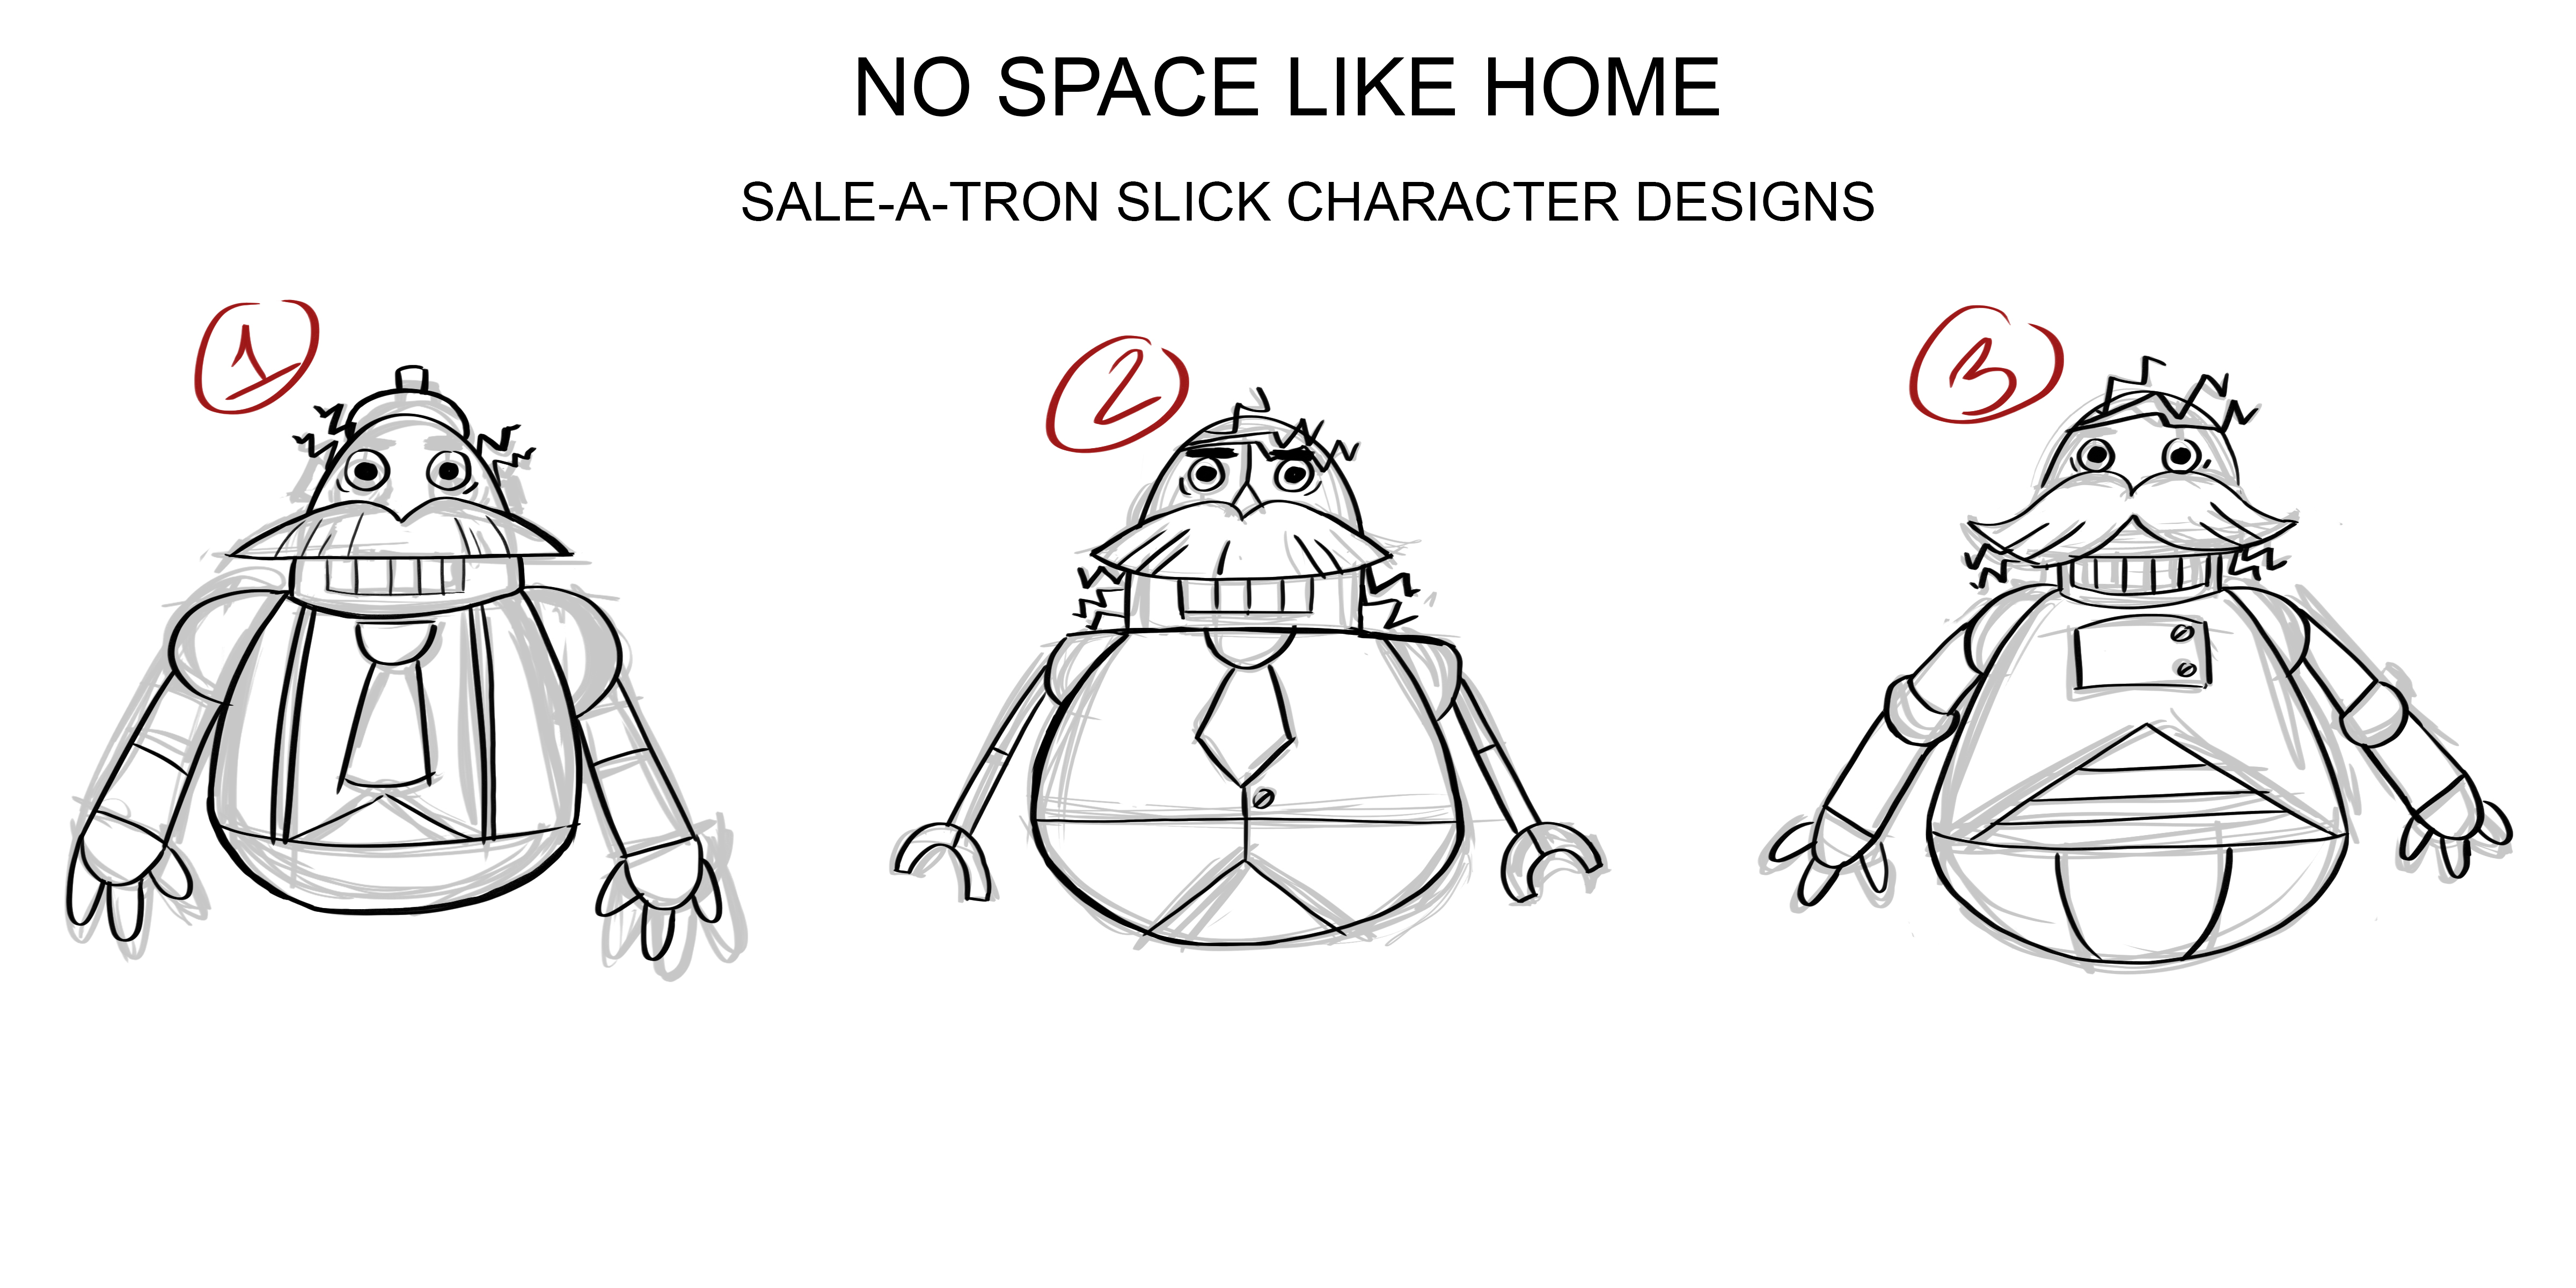 Paxton_NSLH_Sale_A_Tron_Slick_Character_